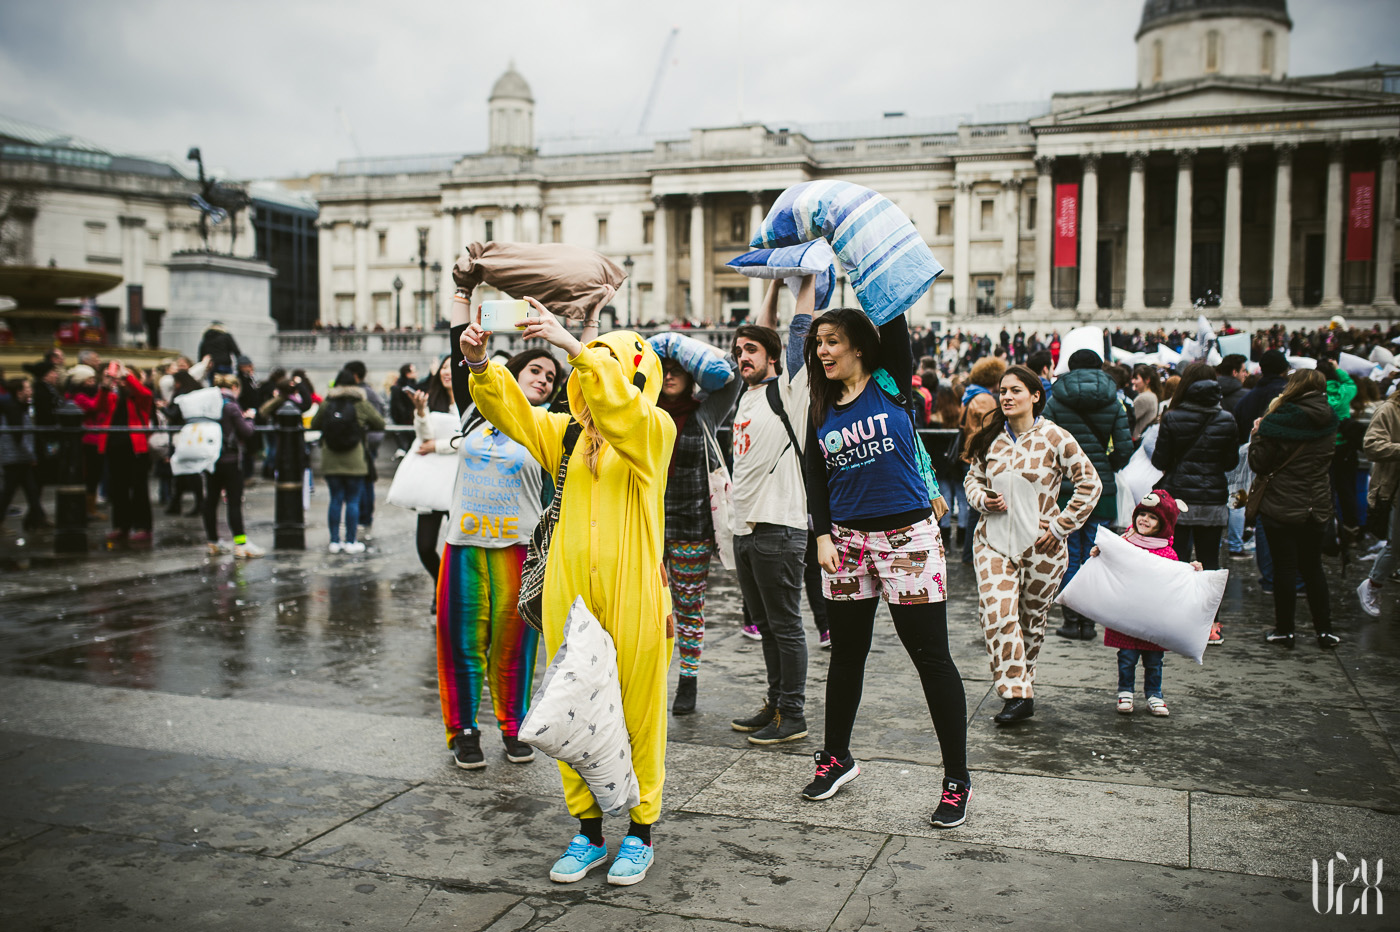 International Pillow Fight Day In London 2015 Street Photography Pagalviu Musis 25